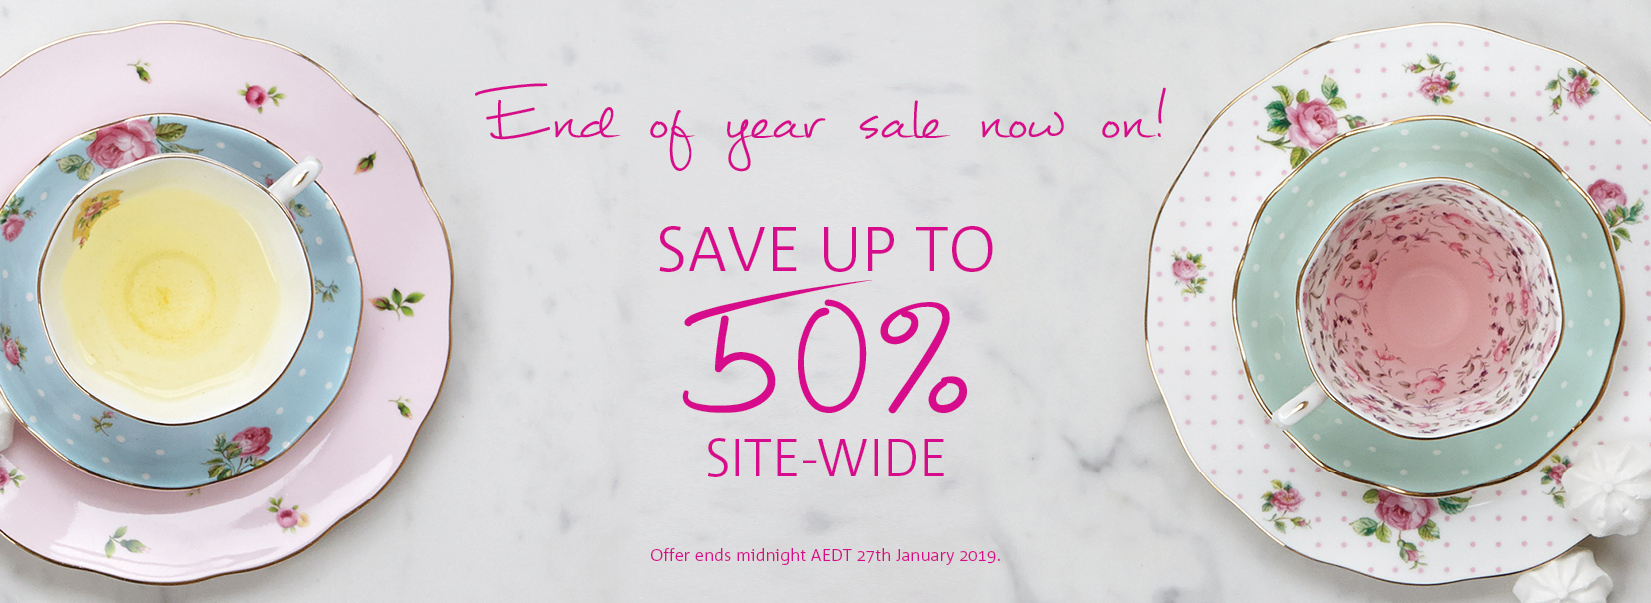 End of Year Sale Dec 18